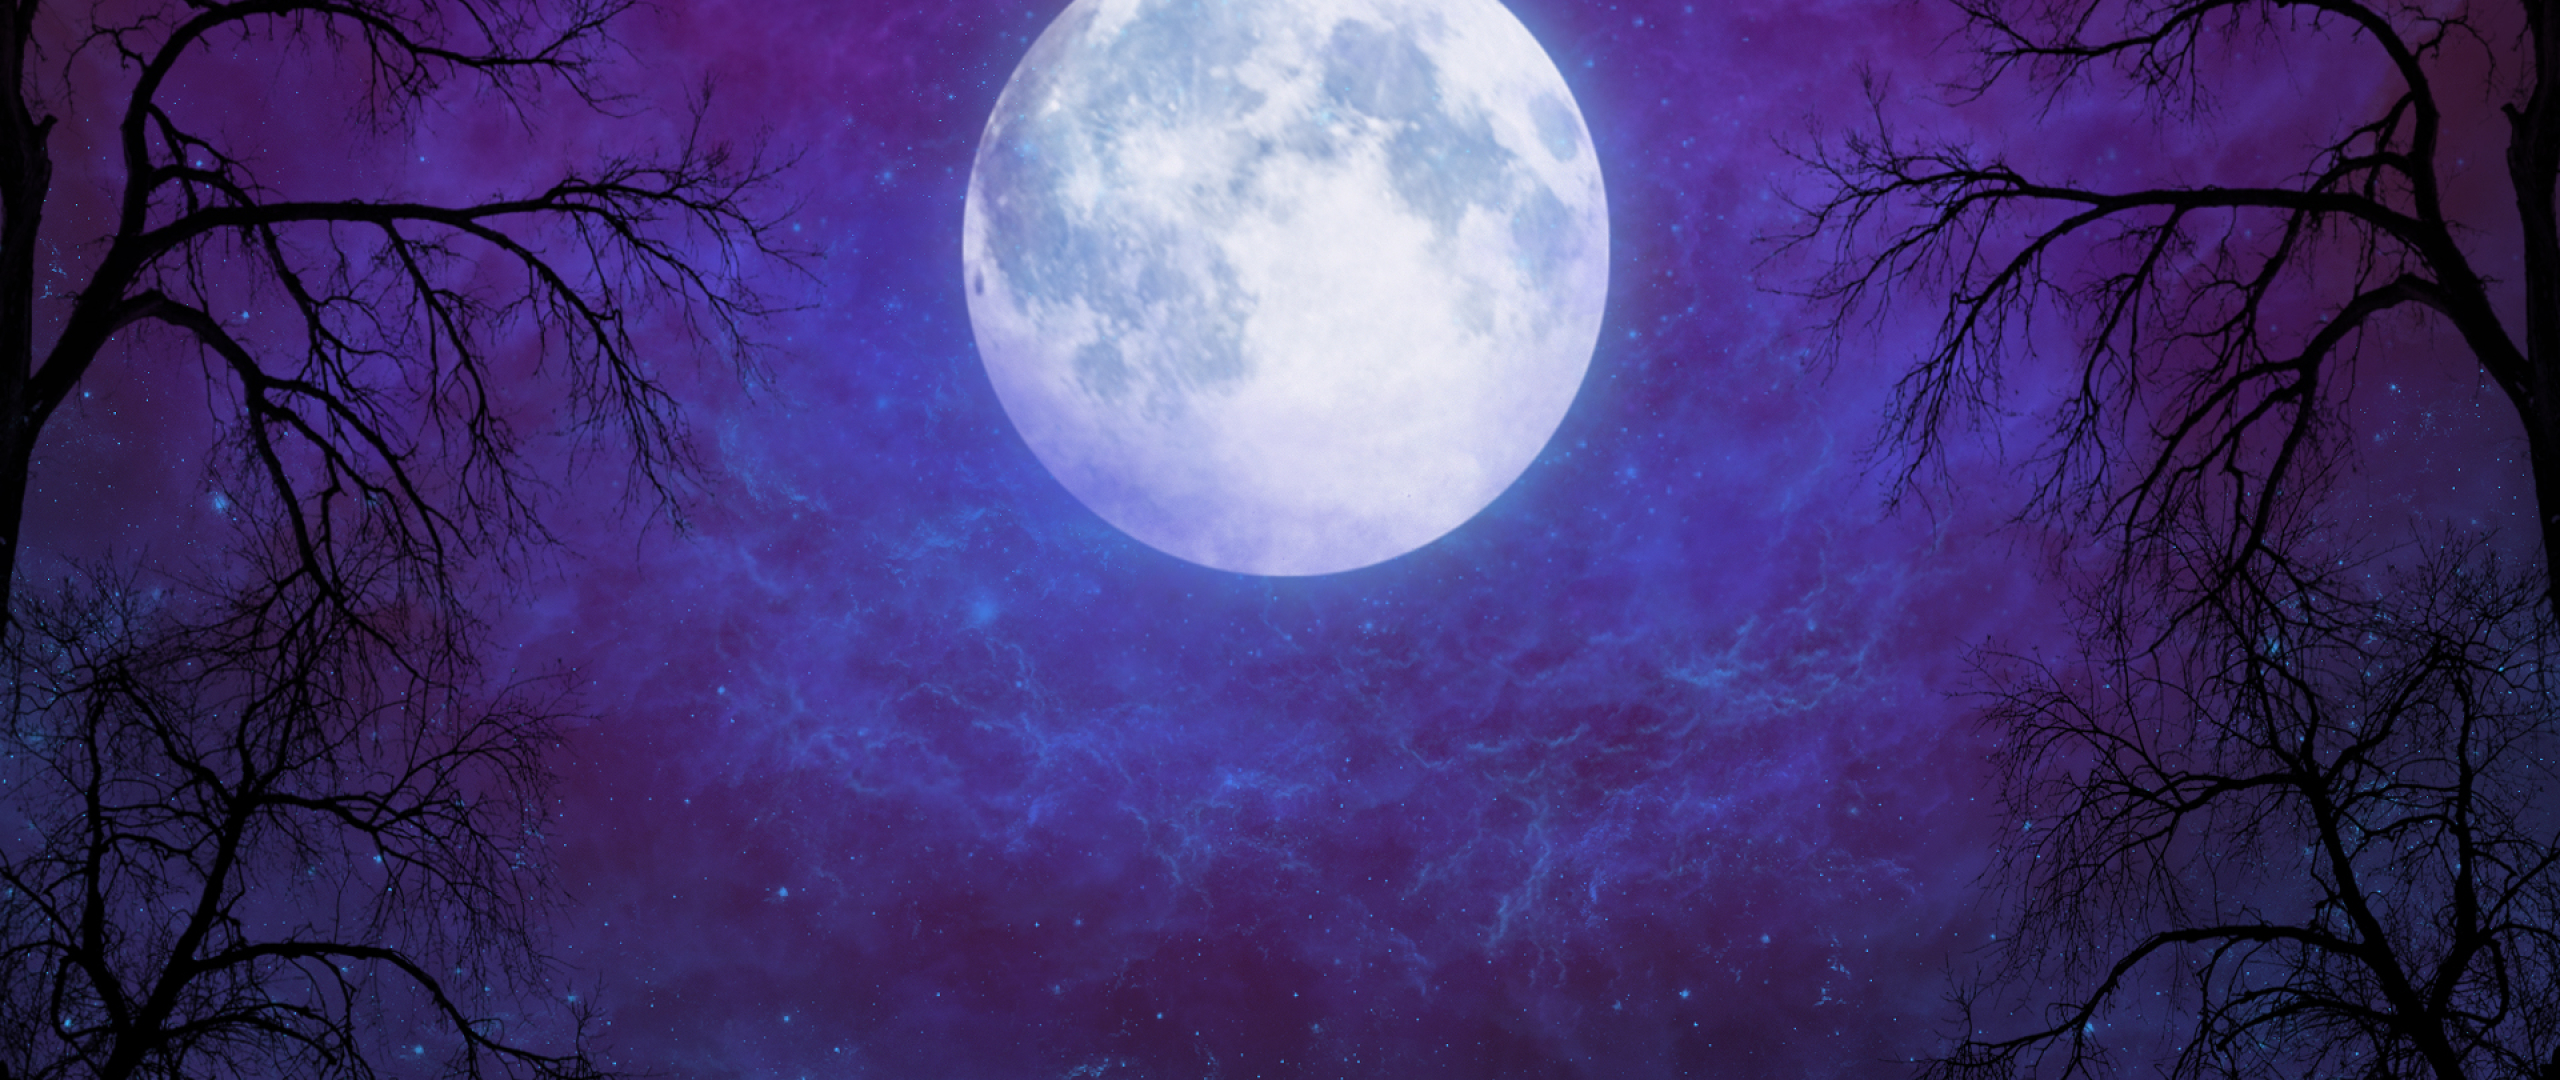 Artistic Full Moon In Starry Night Sky, Full HD Wallpaper